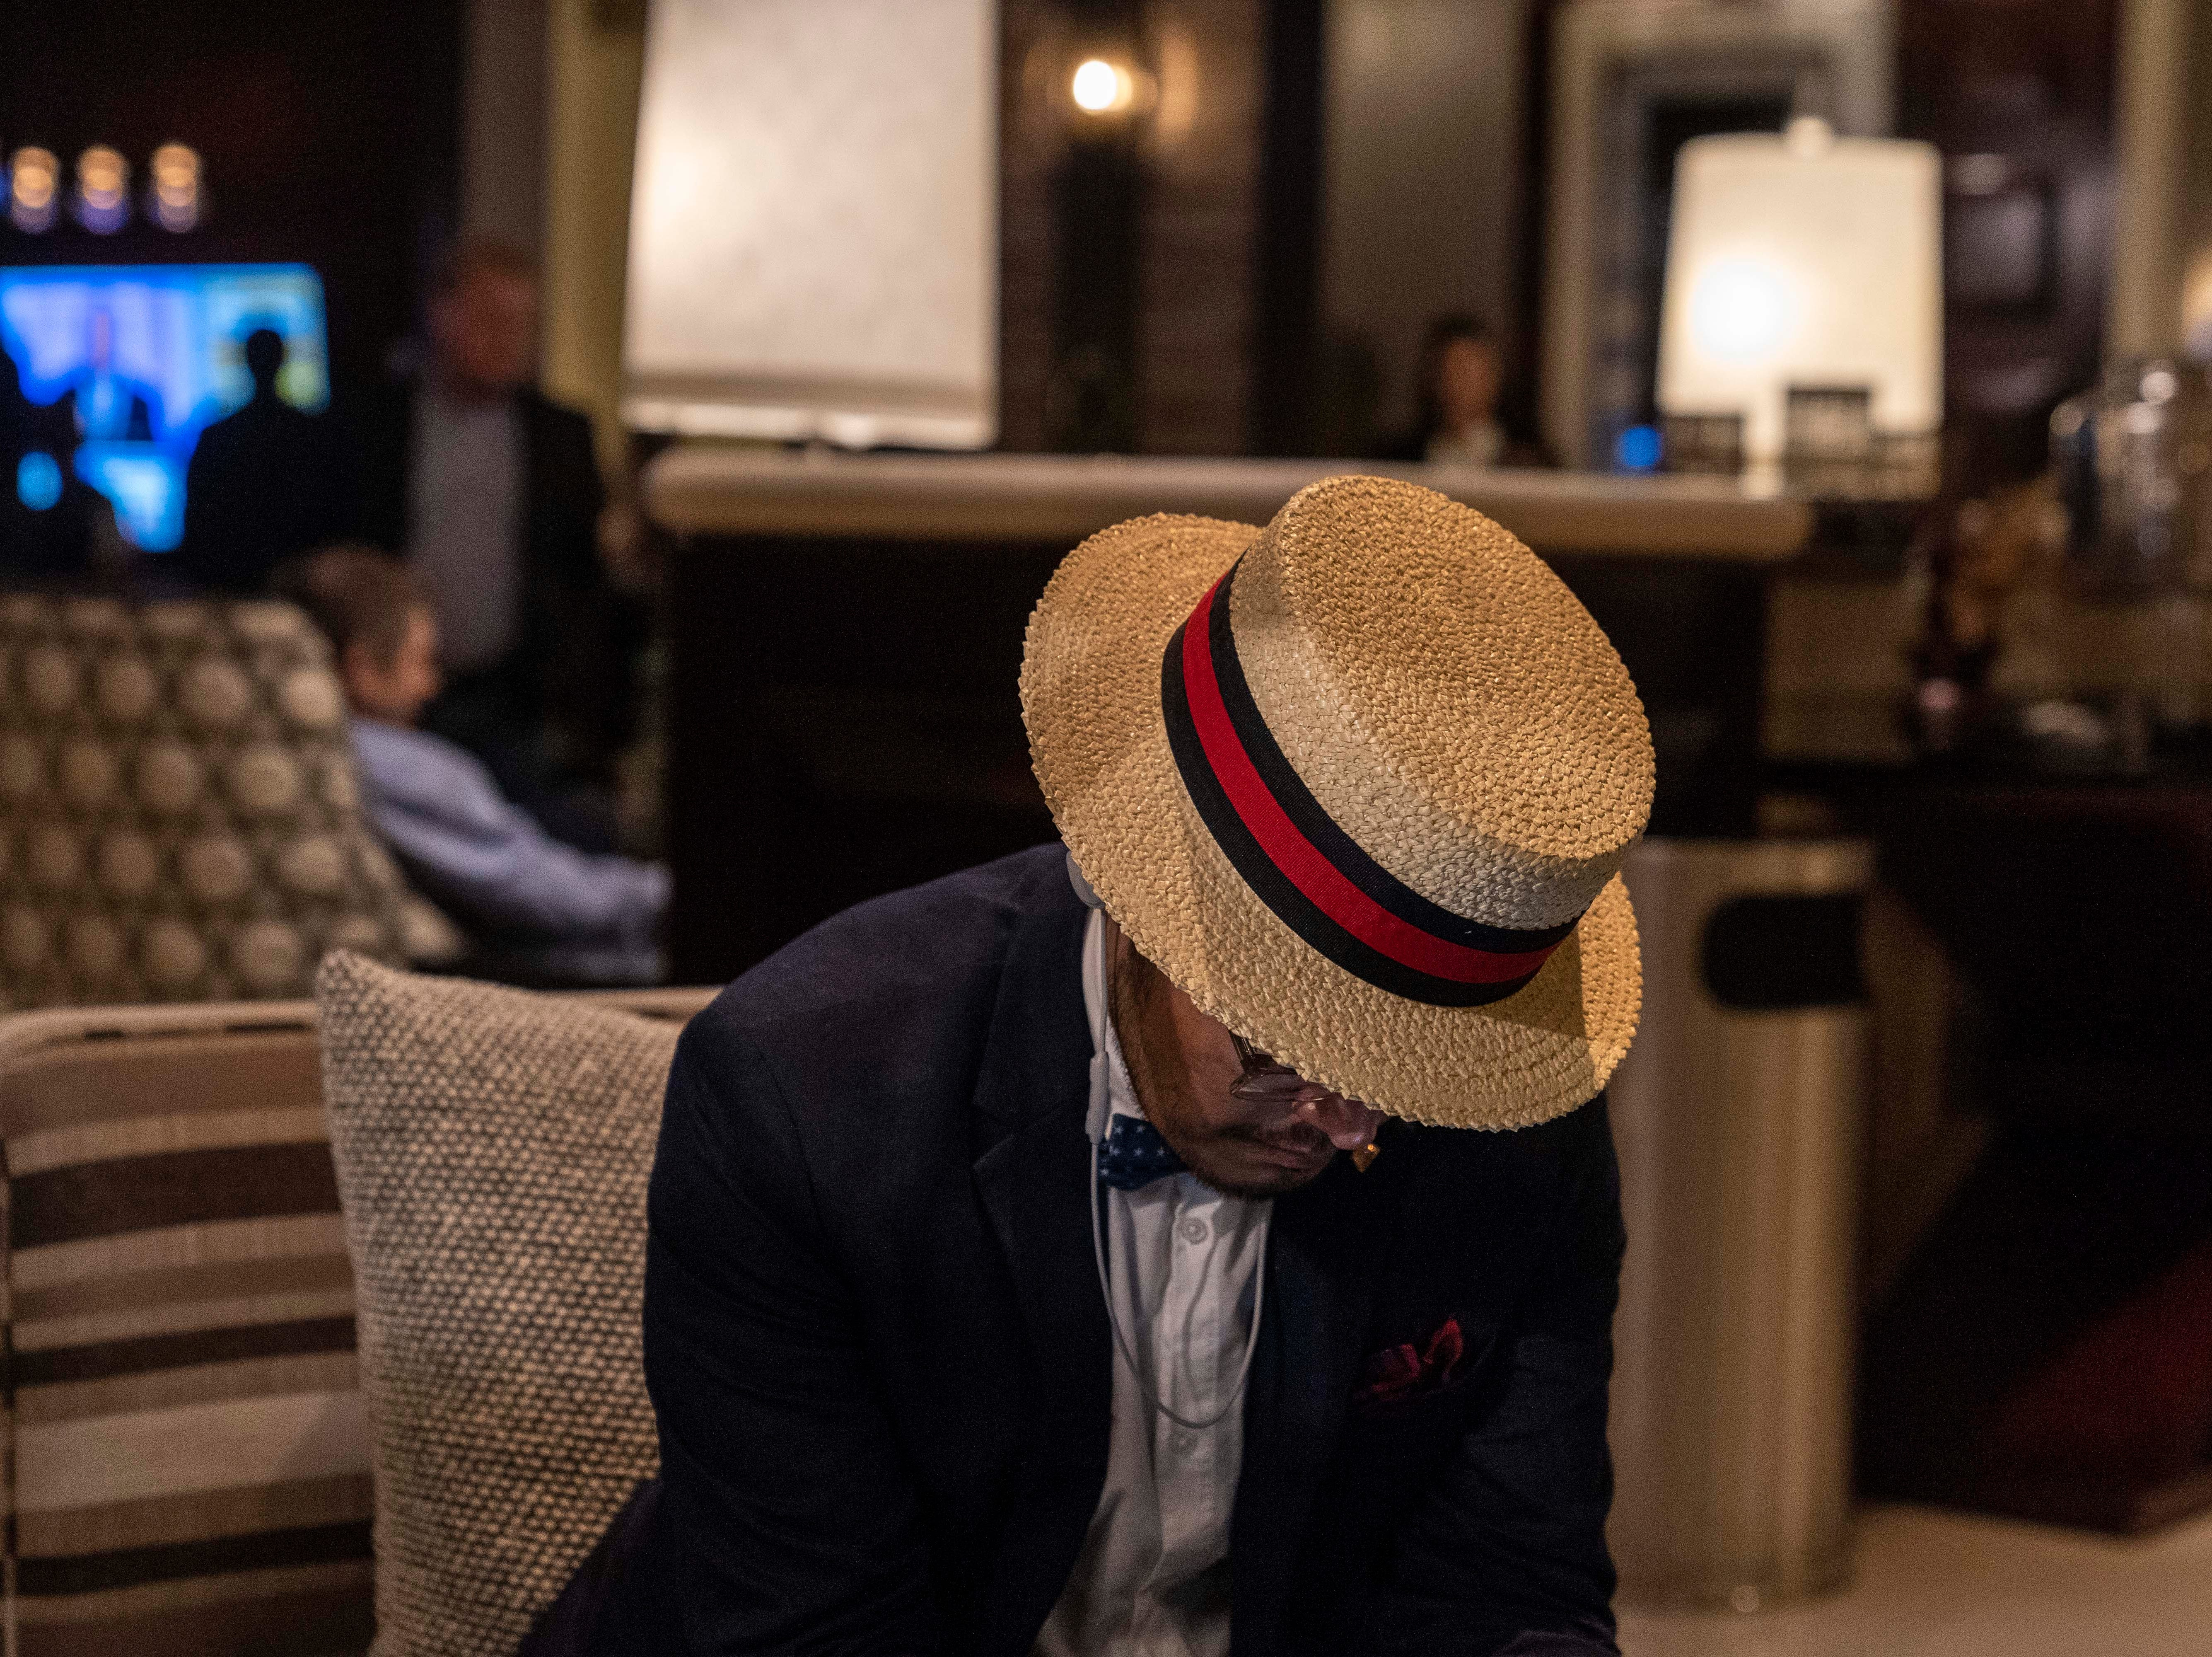 Democrat supporter Douglas Capitan checks his tweets at the Renaissance Phoenix Downtown Hotel on Nov. 6, 2018.